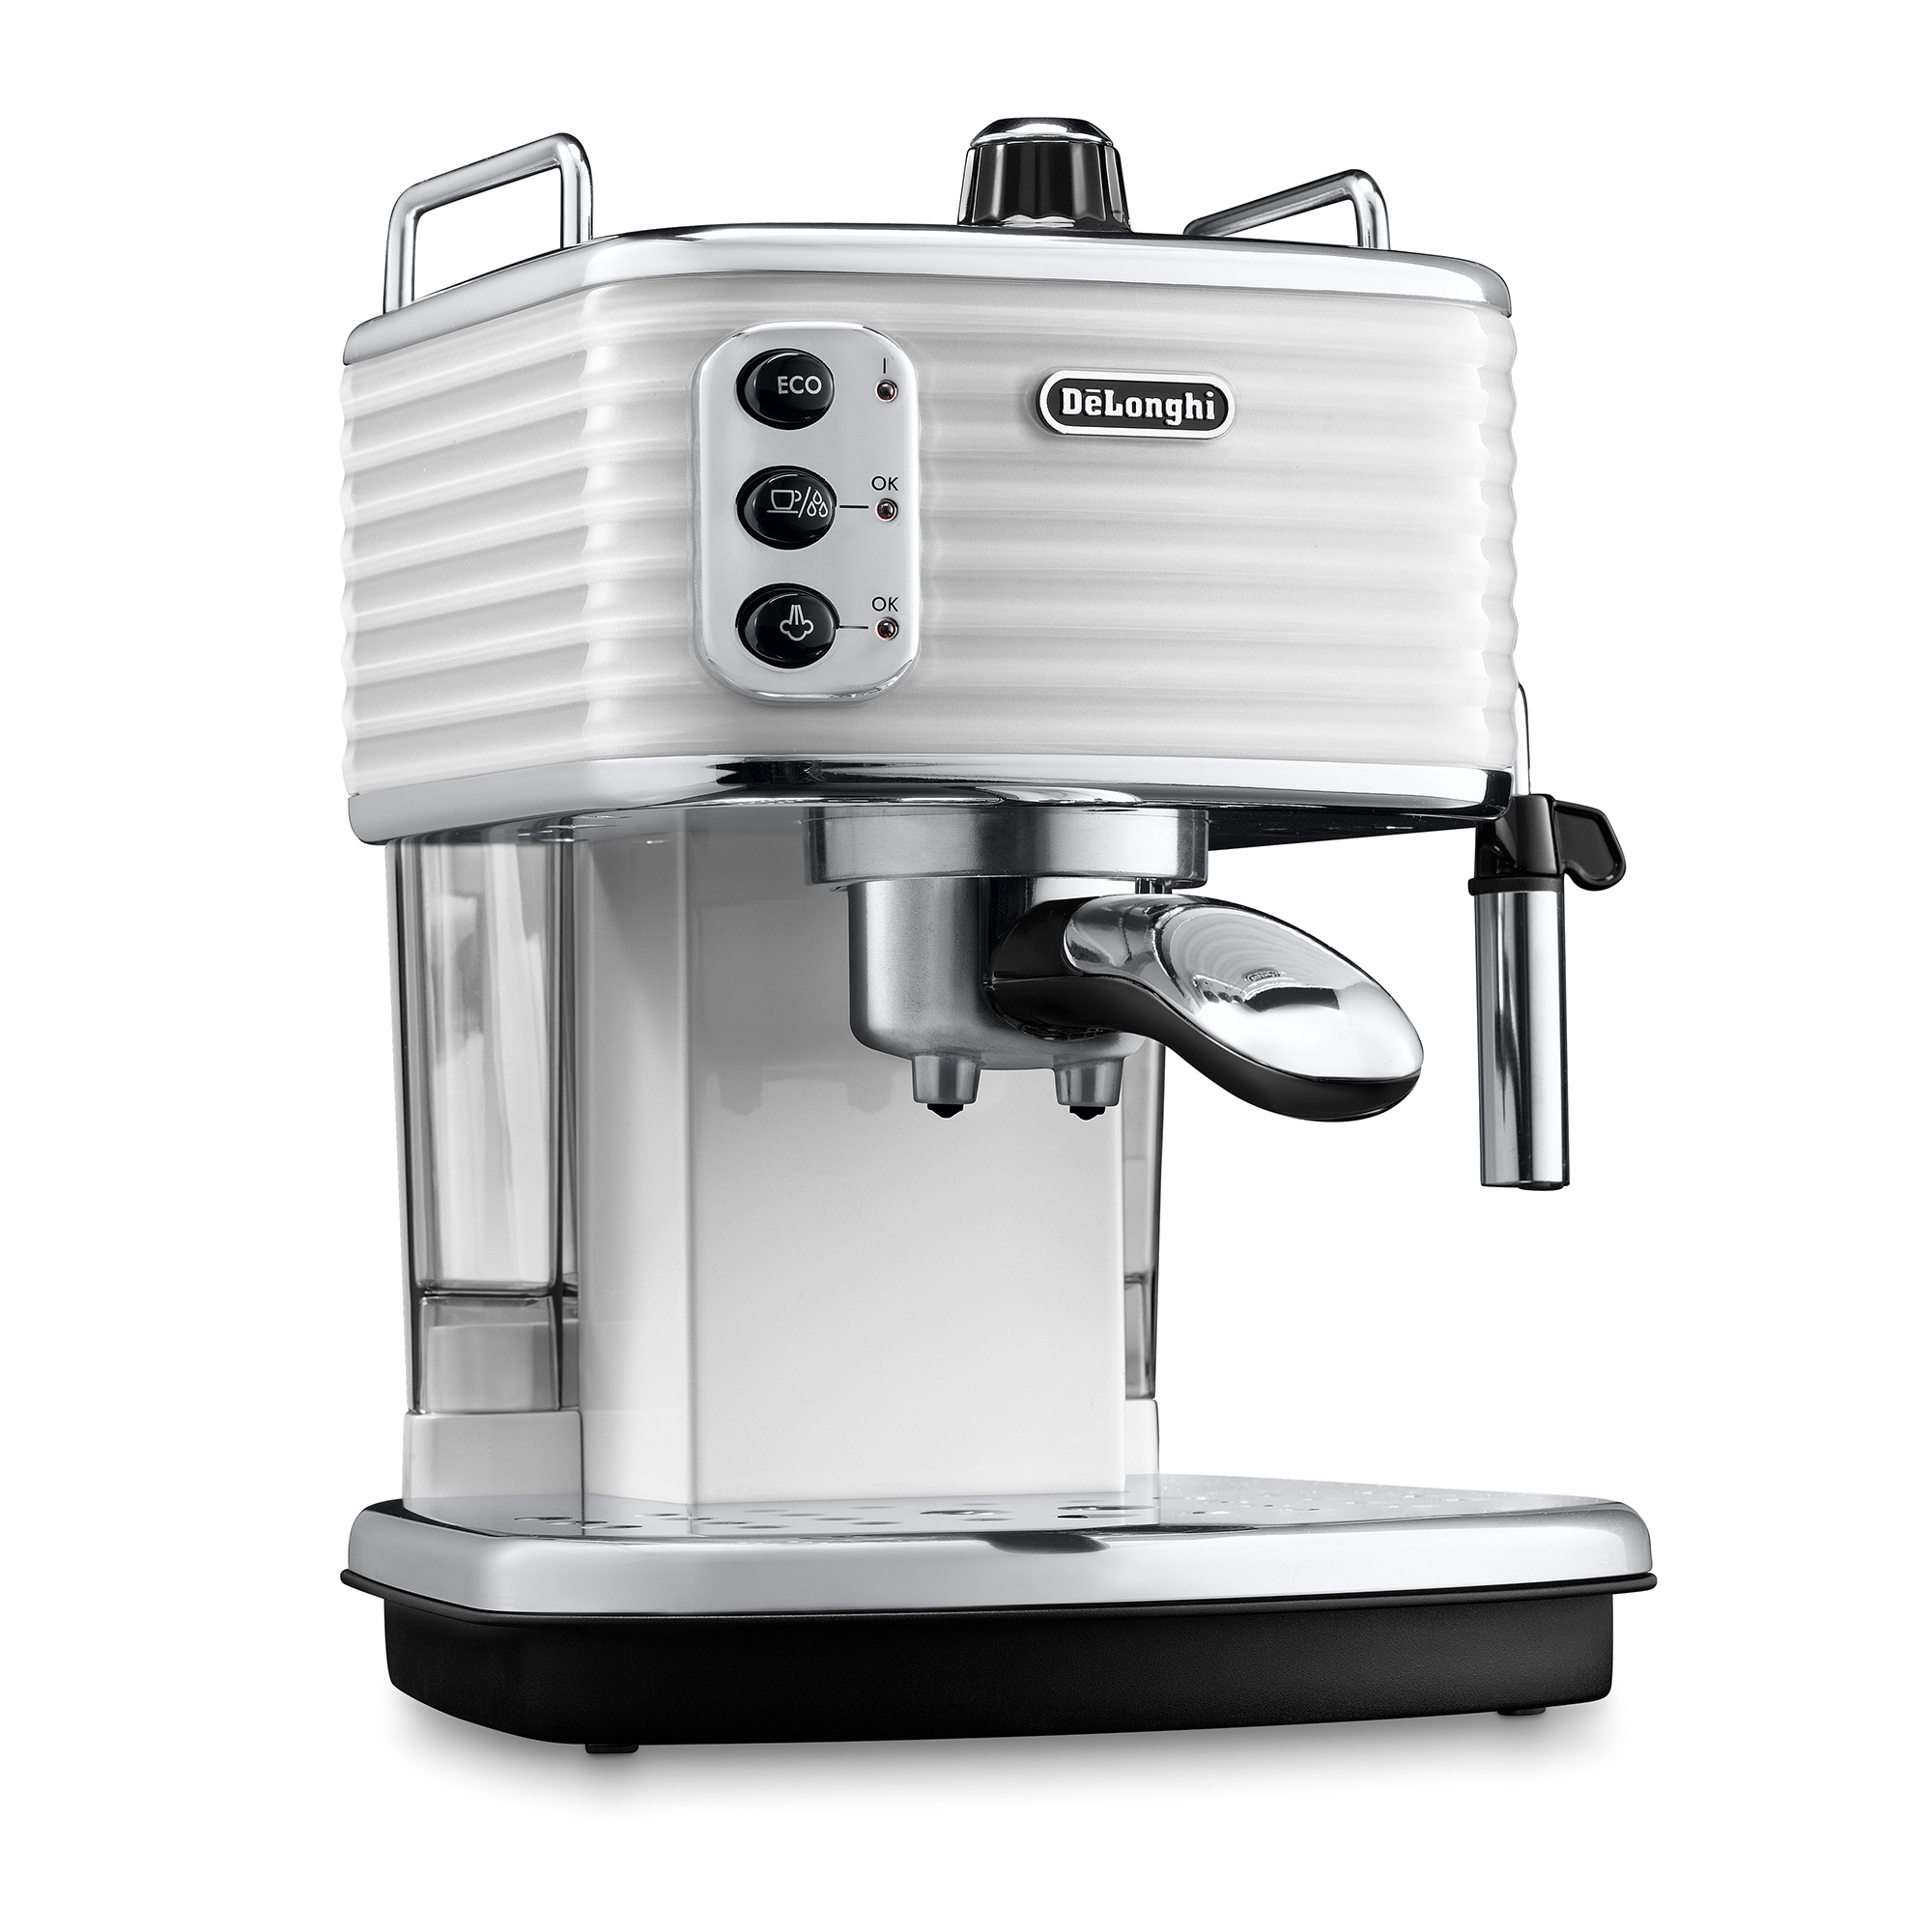 De'Longhi Scultura Pump Coffee Machine ECZ351.W - White